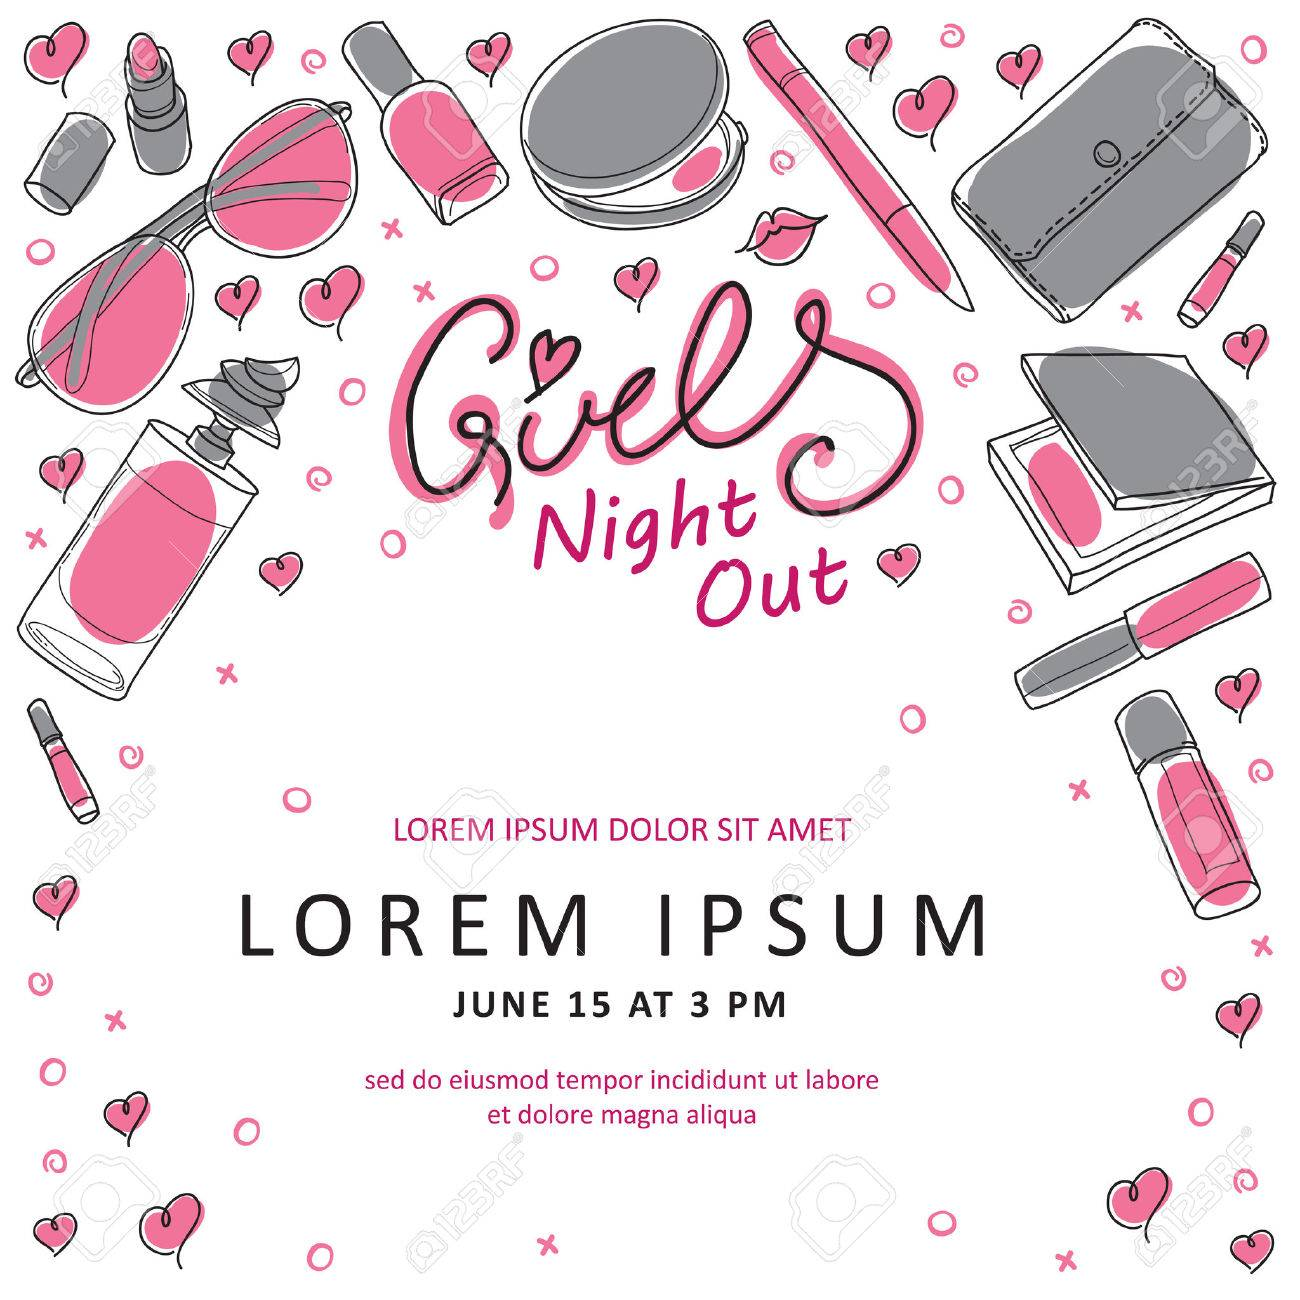 Girls Night Out Party Invitation Card Design in Vector. You can design invitation cards, flyer, thank you card and so on. Girl theme design. - 51384440